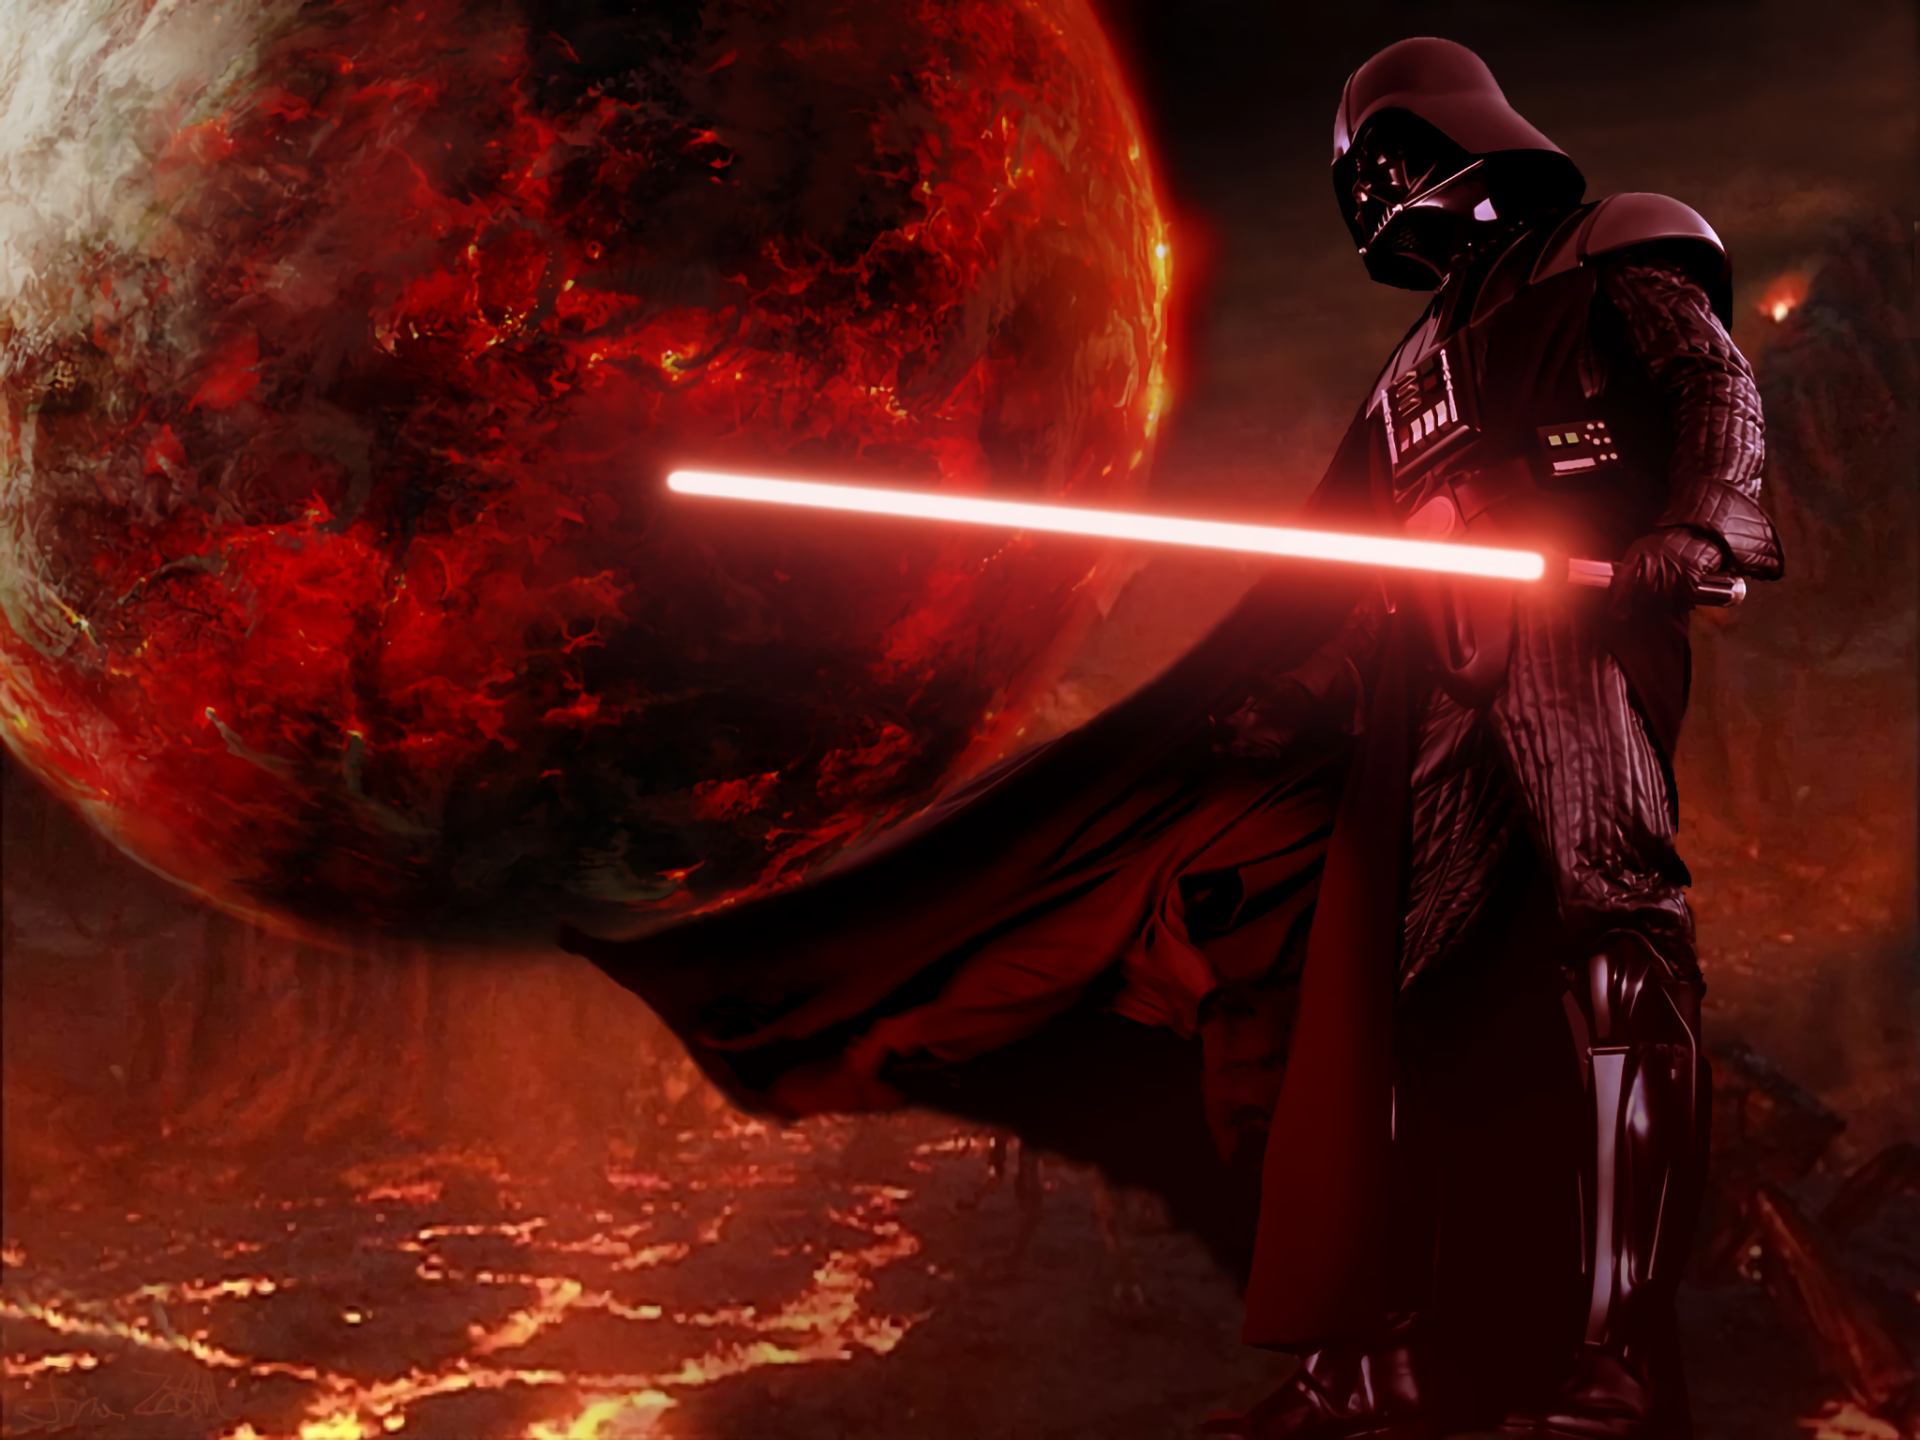 3480 Star Wars Hd Wallpapers Background Images Wallpaper Abyss